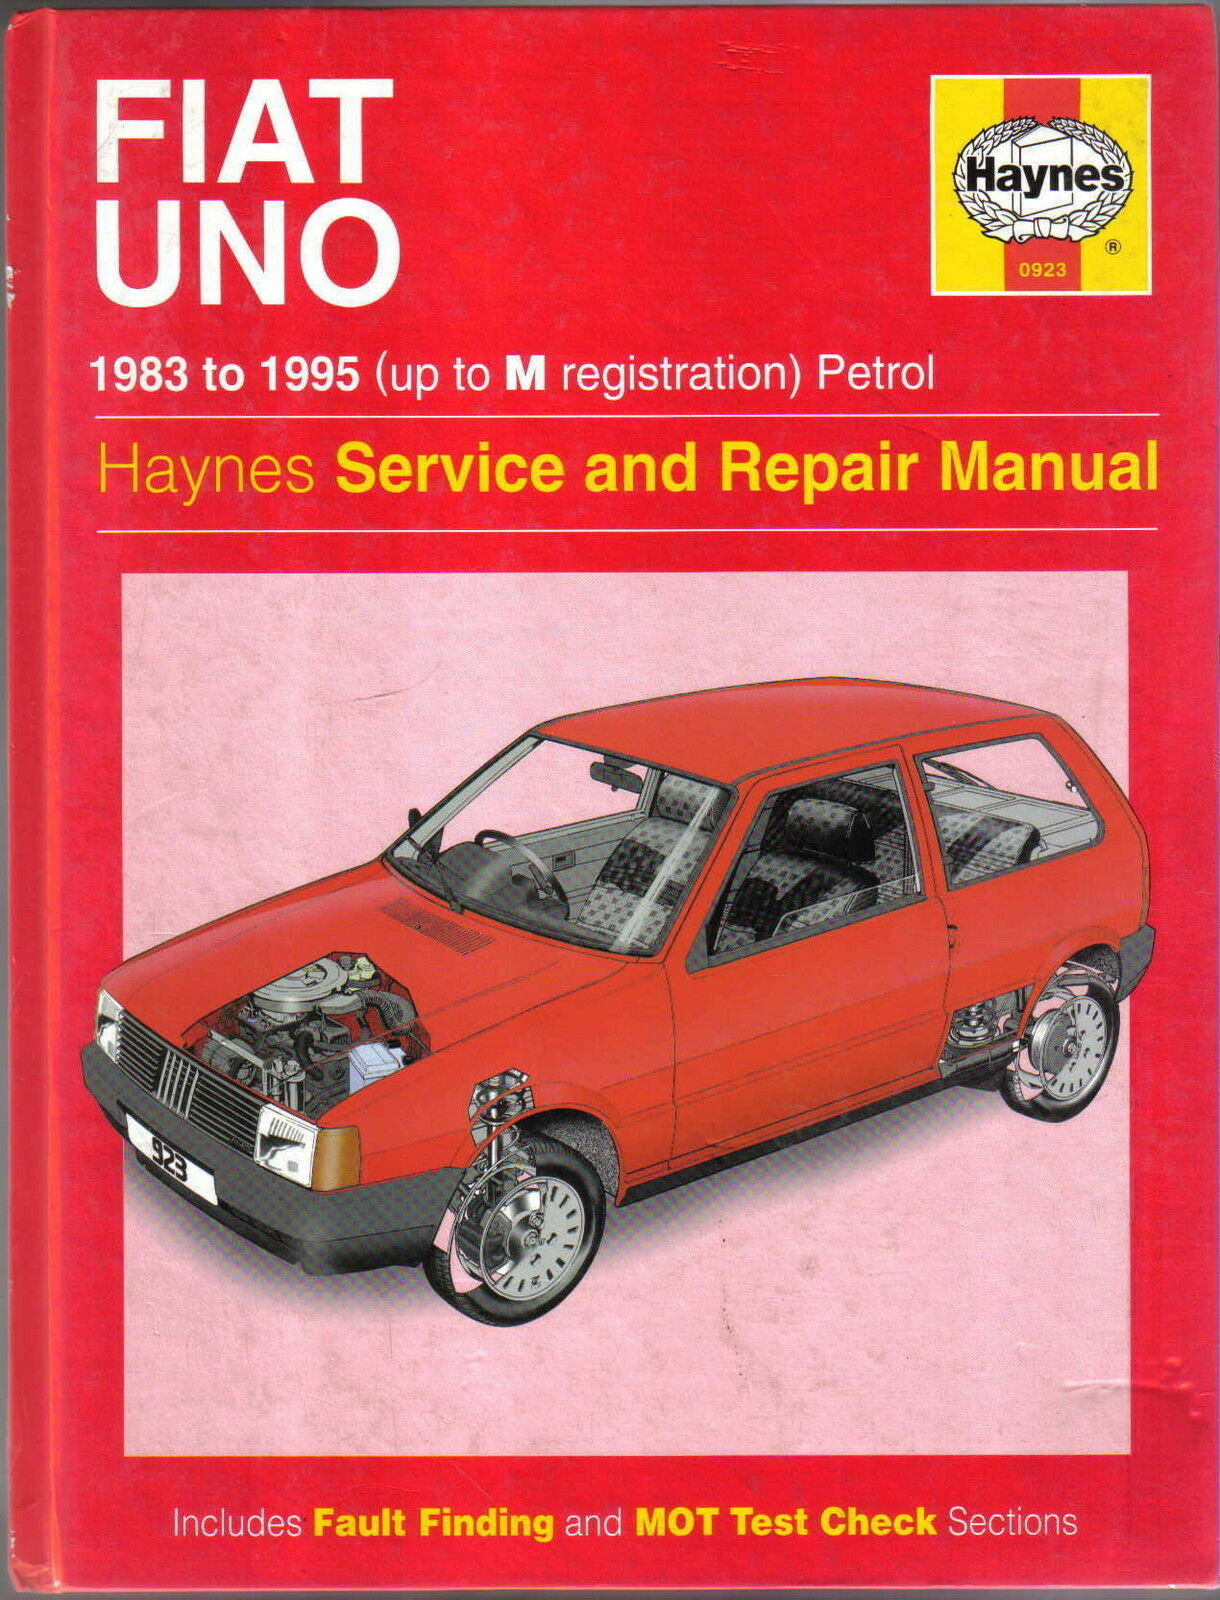 fiat uno manual free download